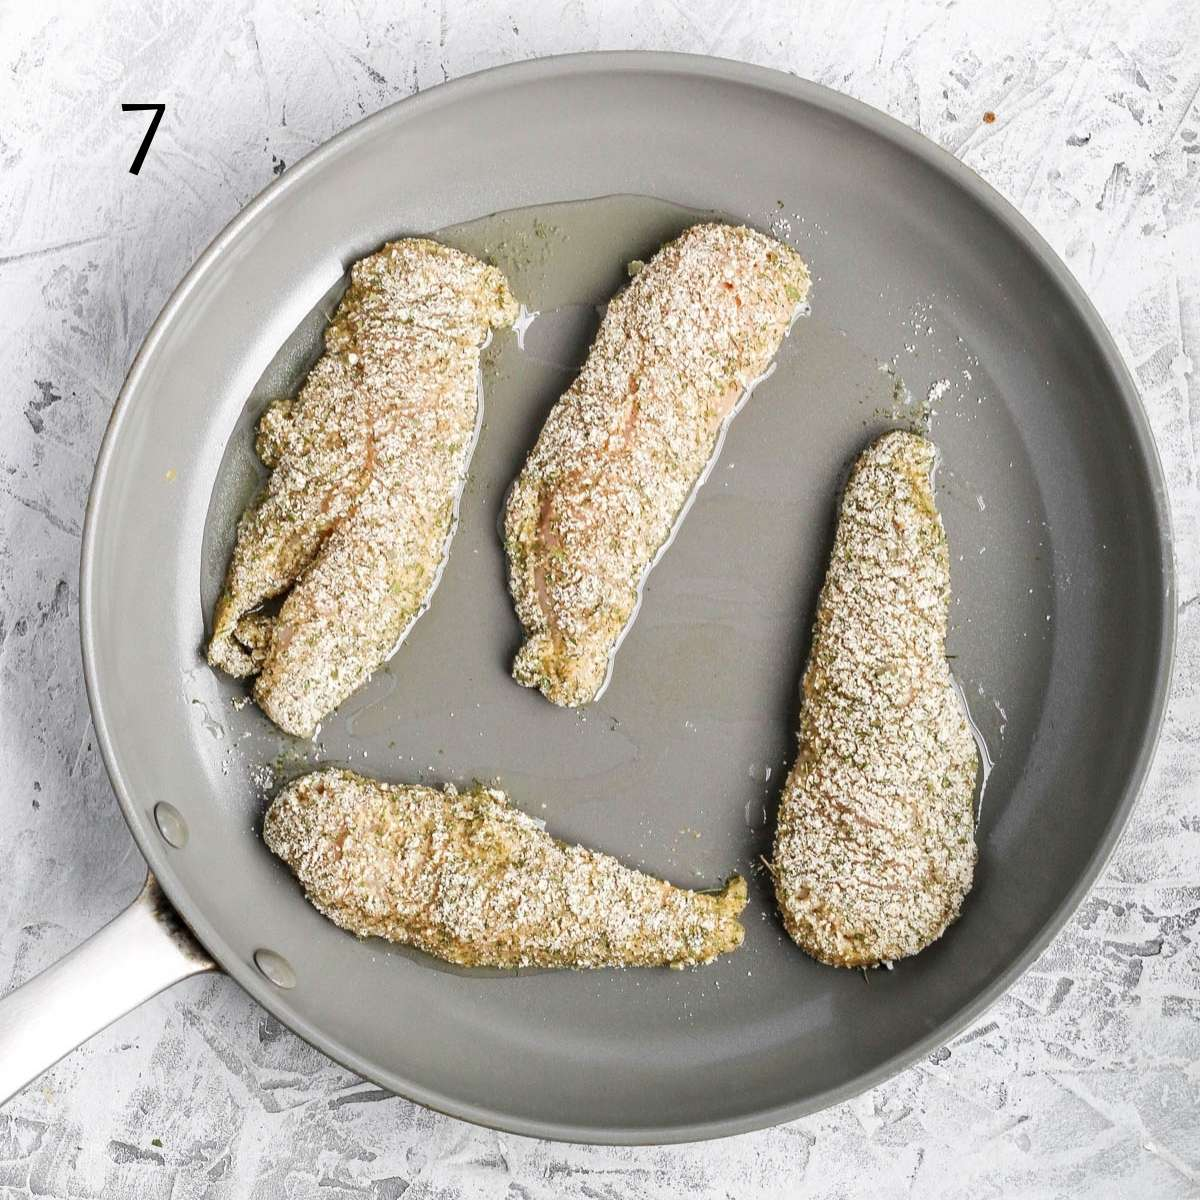 a skillet pan with chicken tenders coated in a almond flour mixture